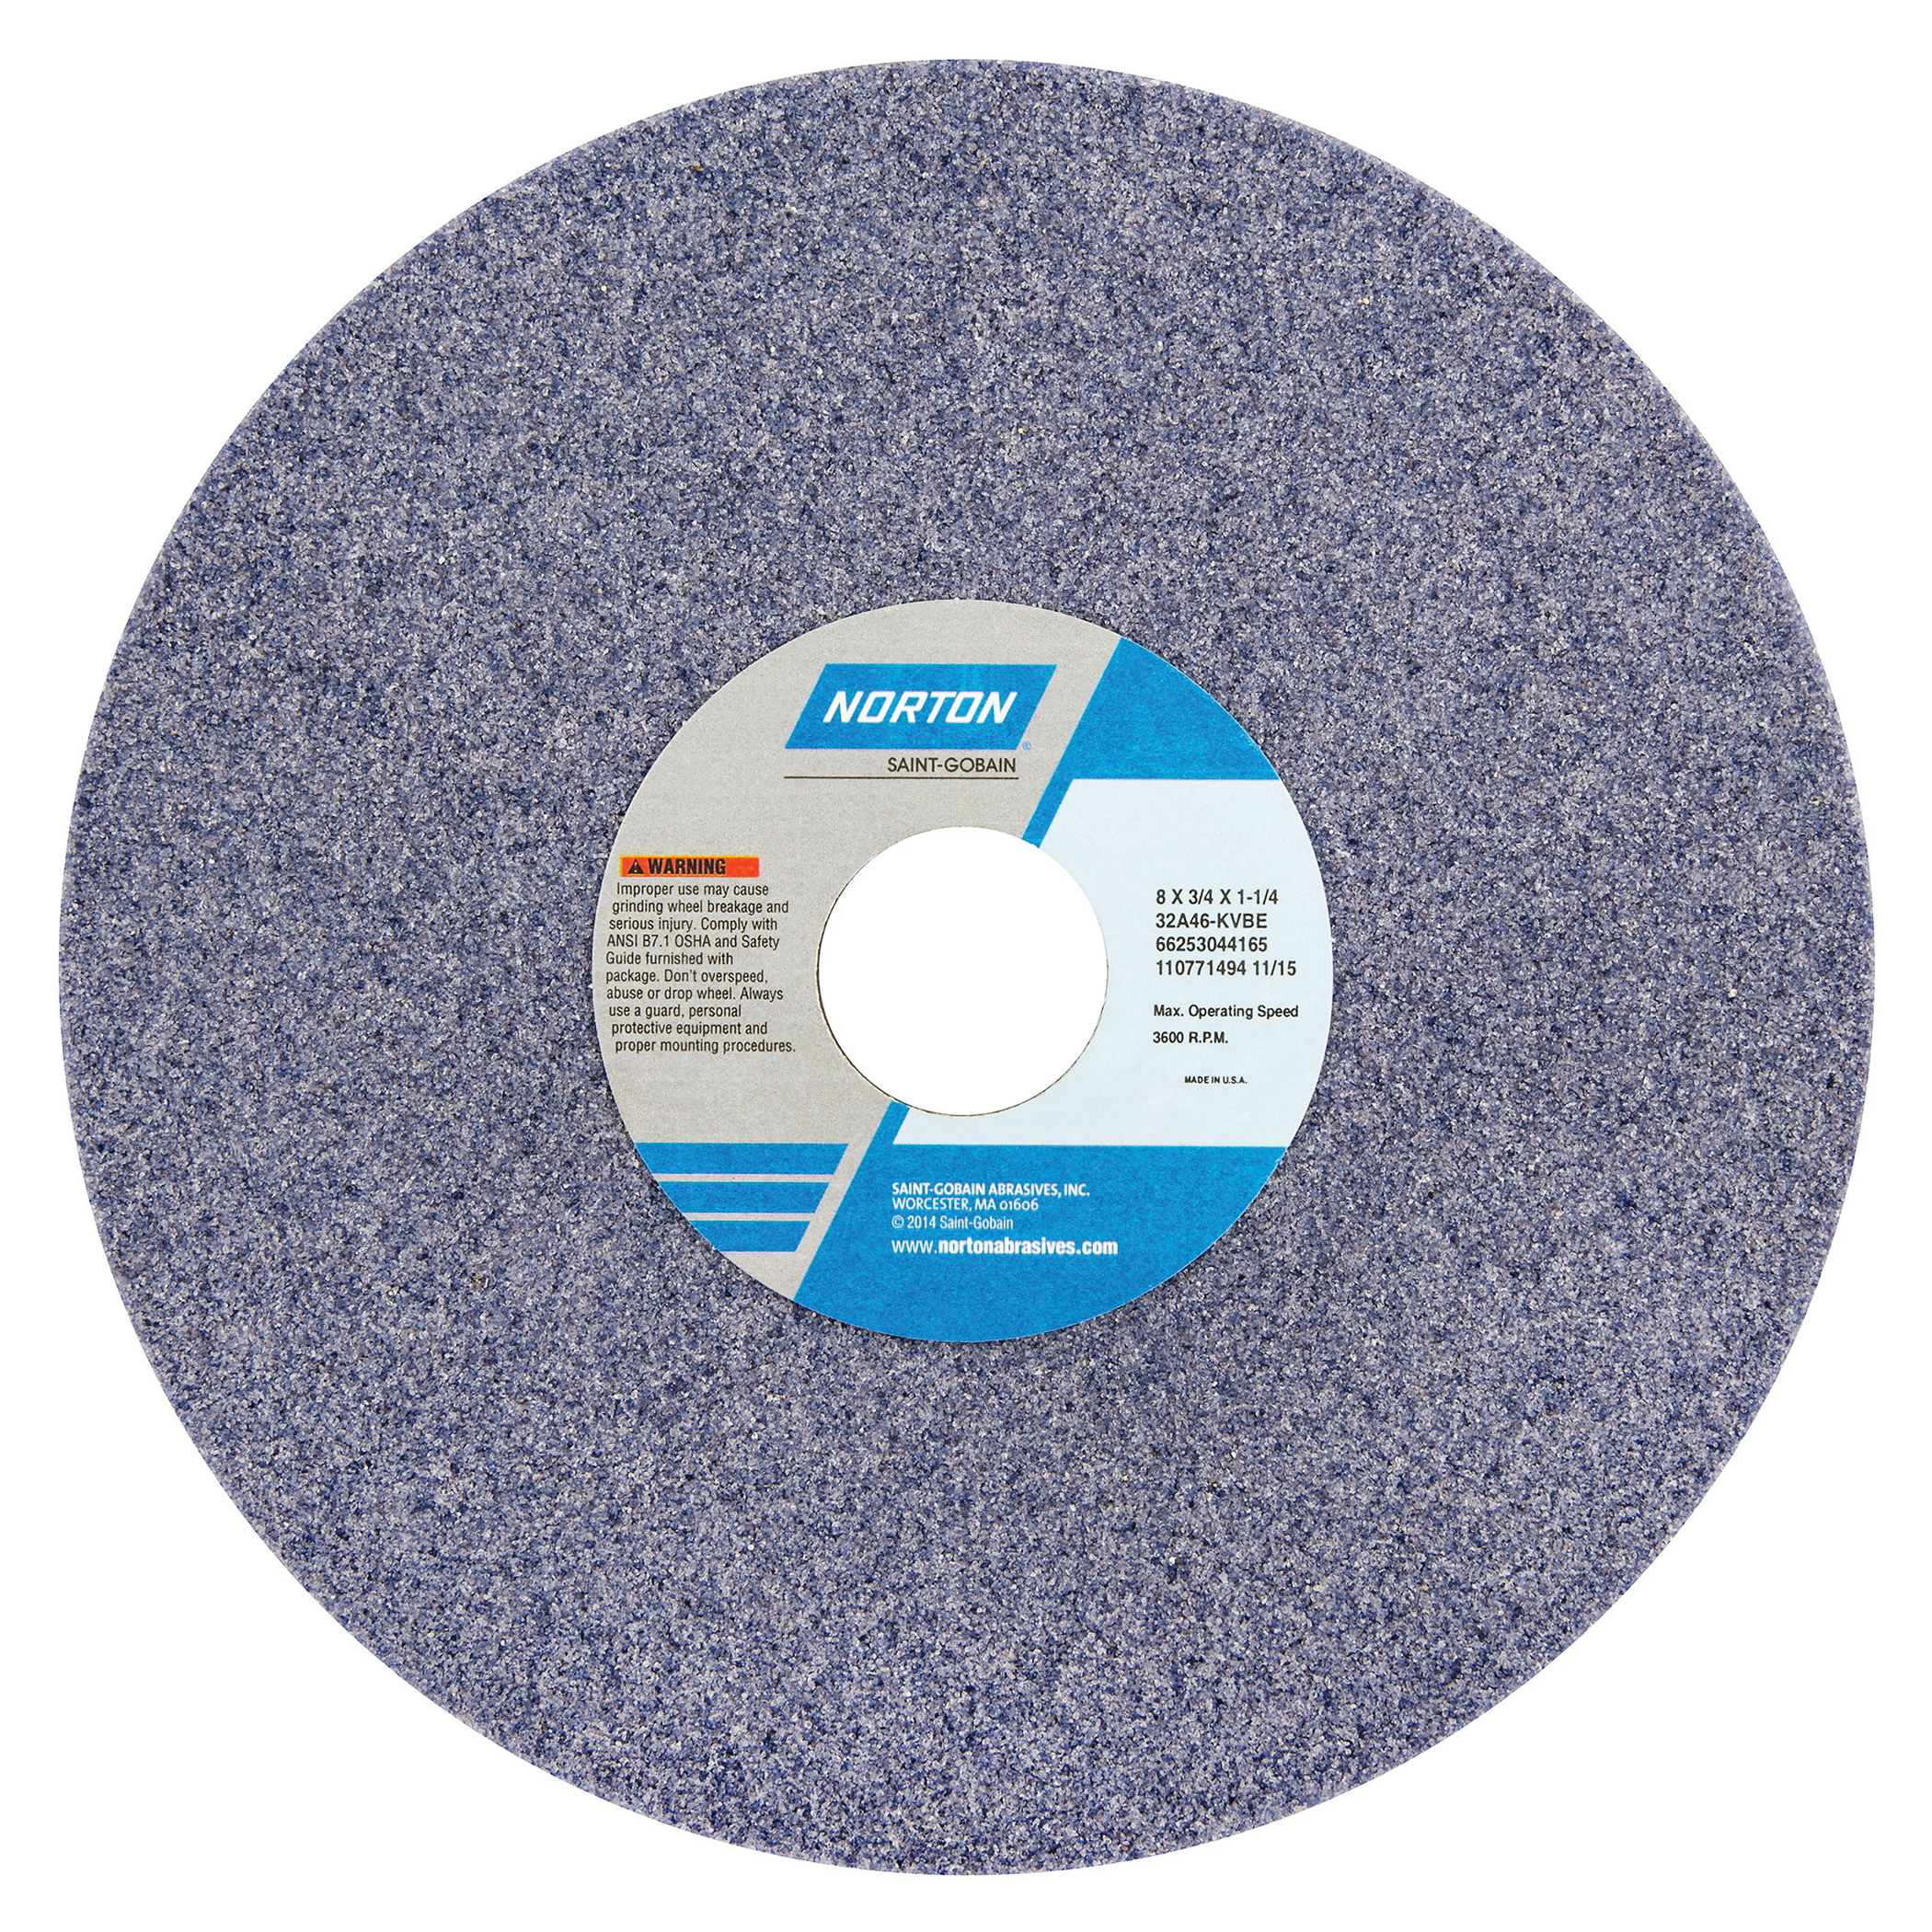 Norton® 66253044165 32A Straight Toolroom Wheel, 8 in Dia x 3/4 in THK, 1-1/4 in Center Hole, 46 Grit, Aluminum Oxide Abrasive